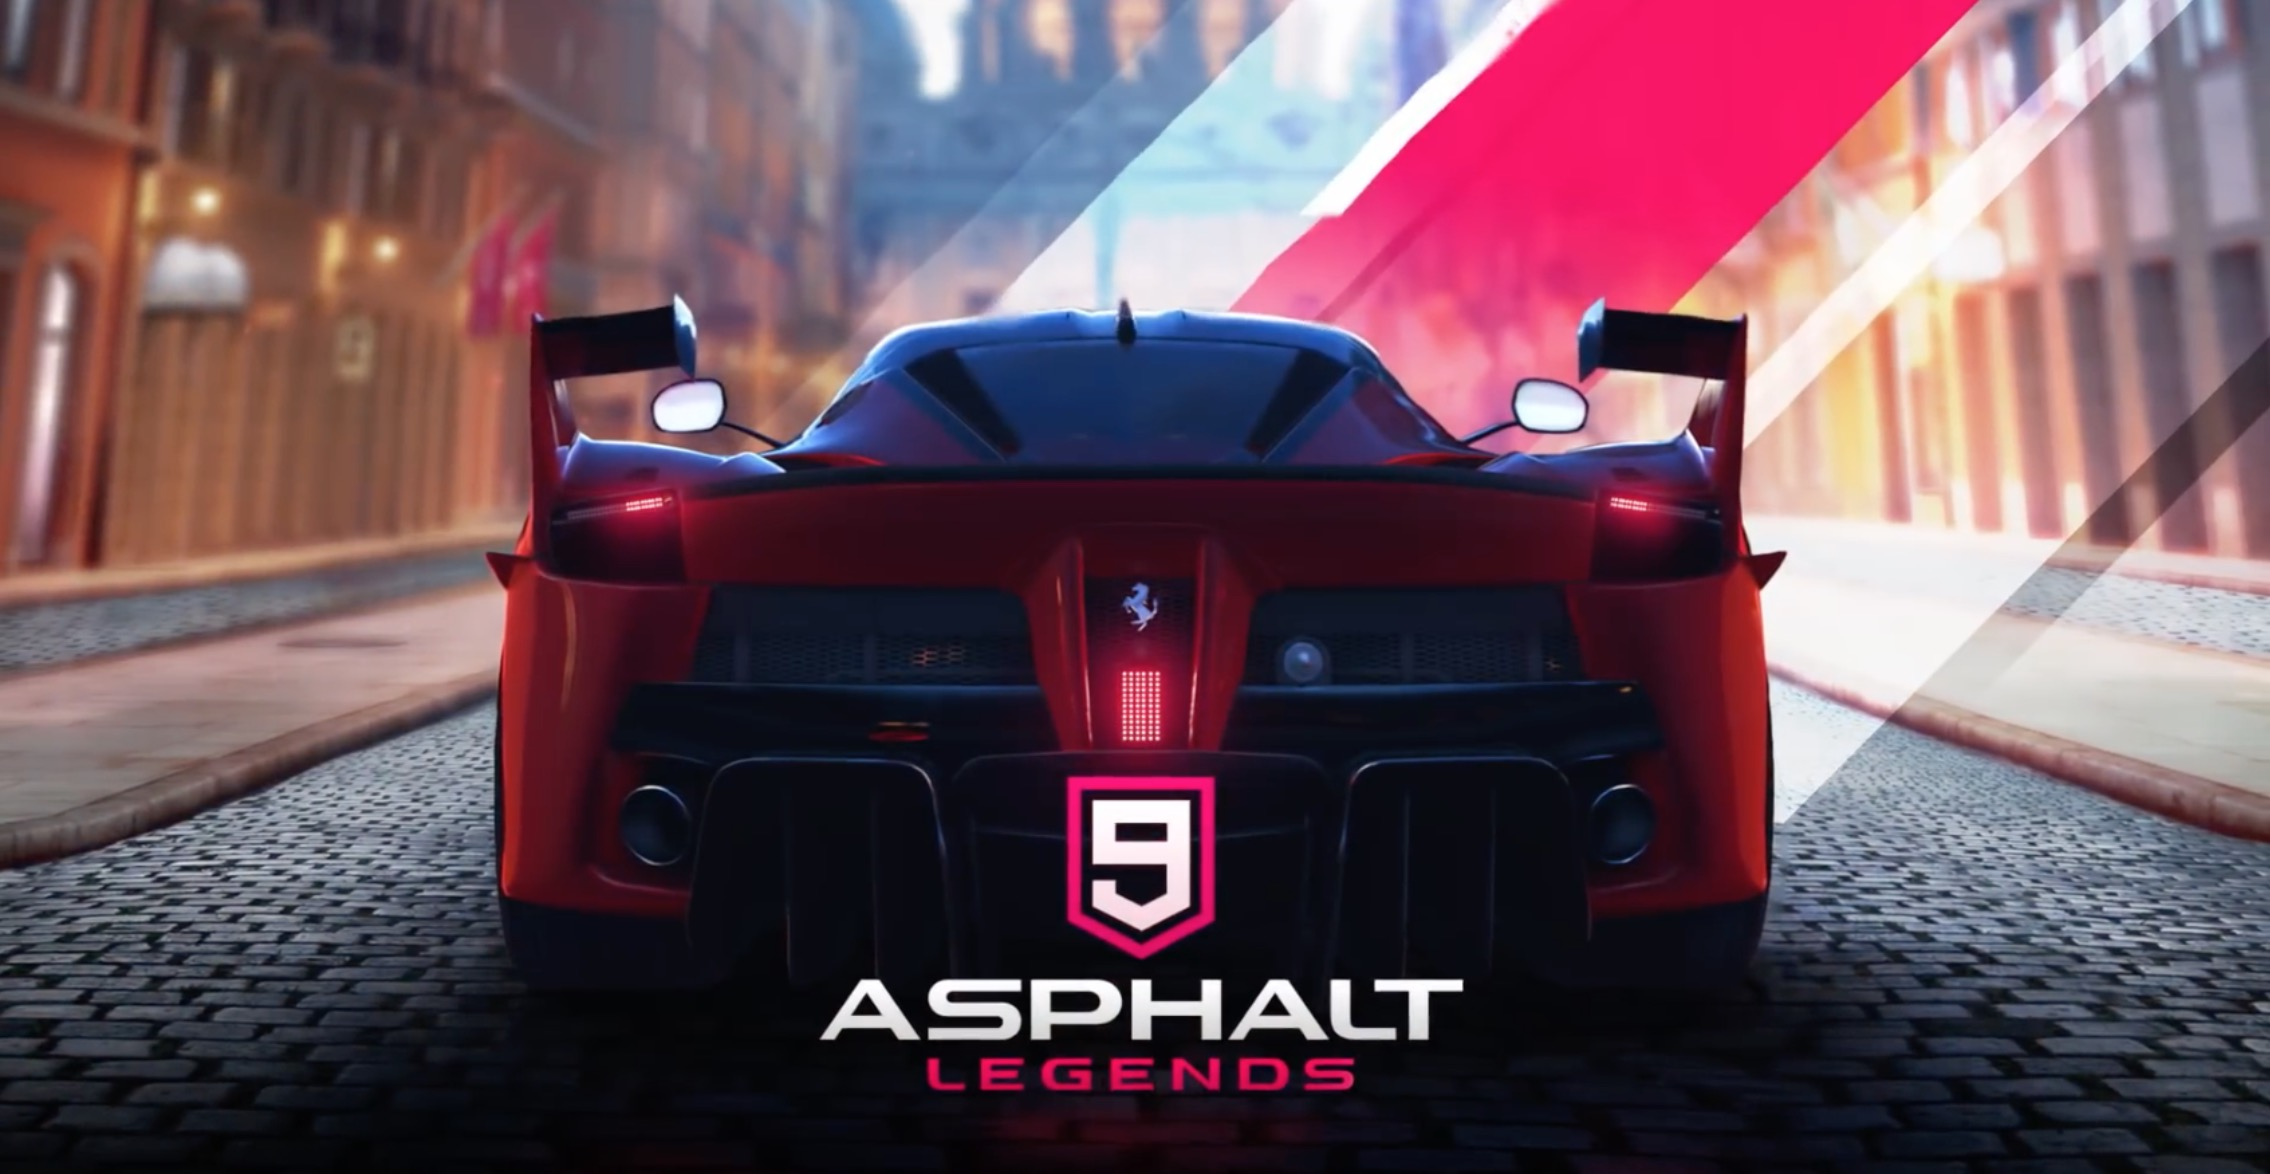 Free online racing car games for adults would